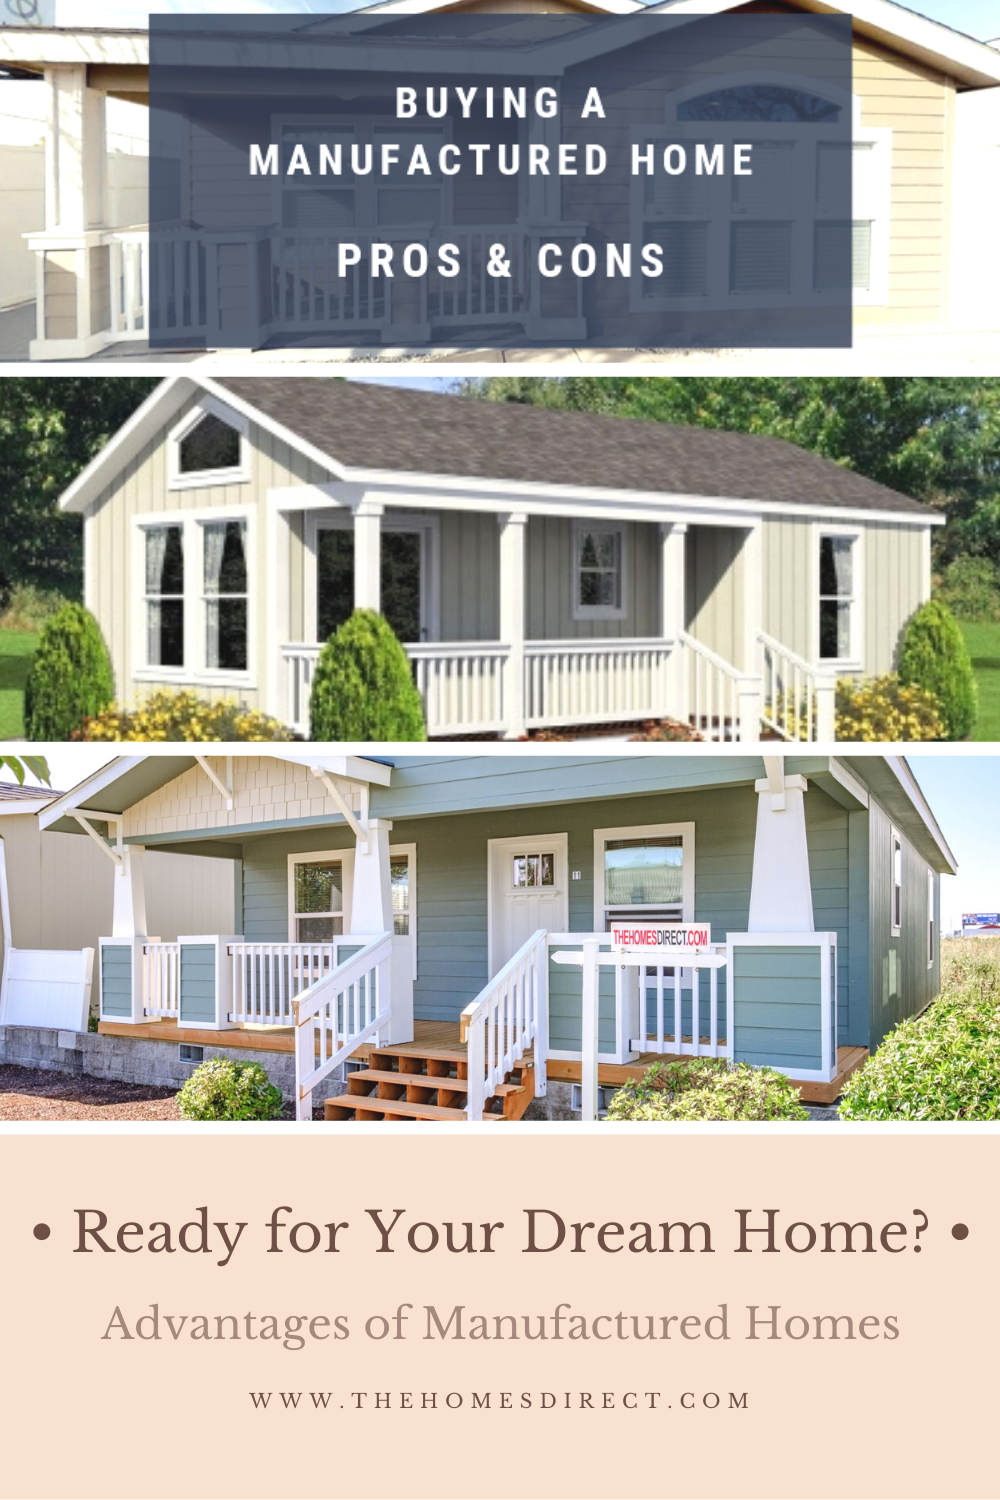 Ready For Your Dream Home Buying A Manufactured Home Pros And Cons In 2020 Buying A Manufactured Home Manufactured Home Small House Remodel